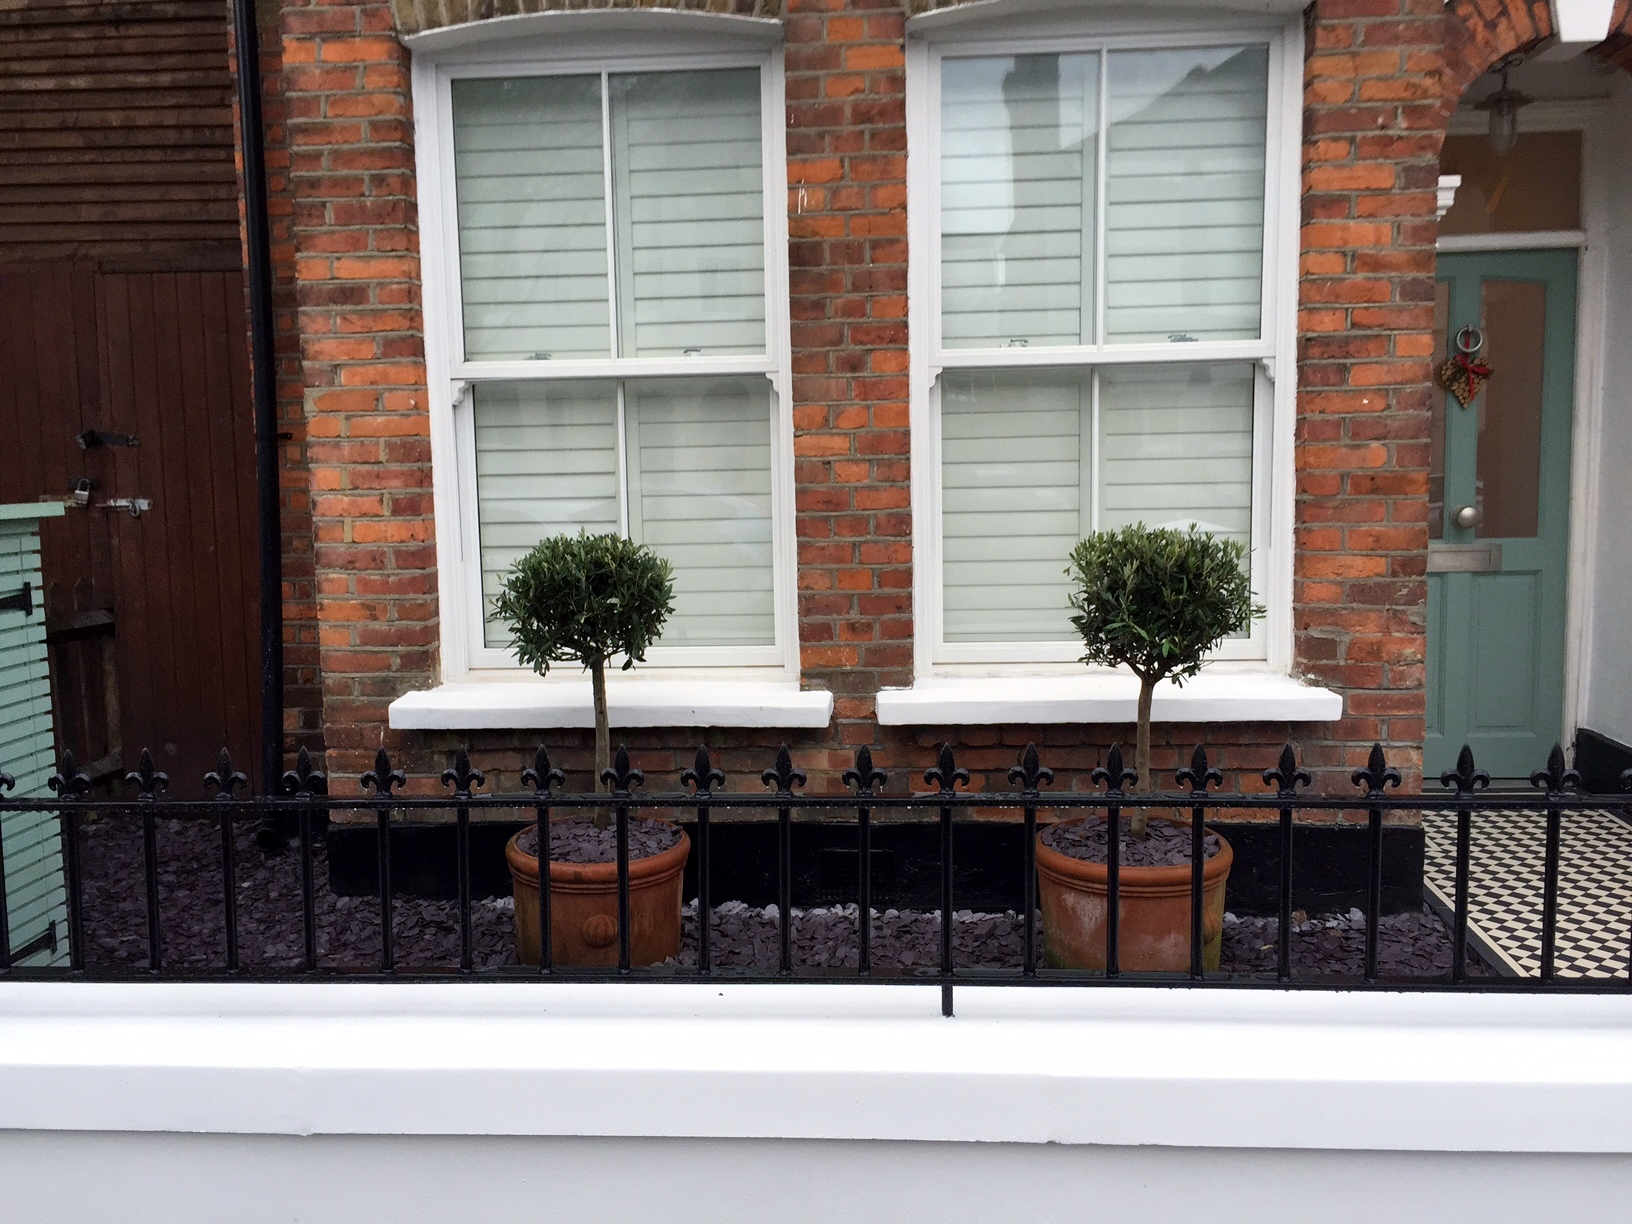 Victorian front garden company walls rails black and white for Victorian garden walls designs